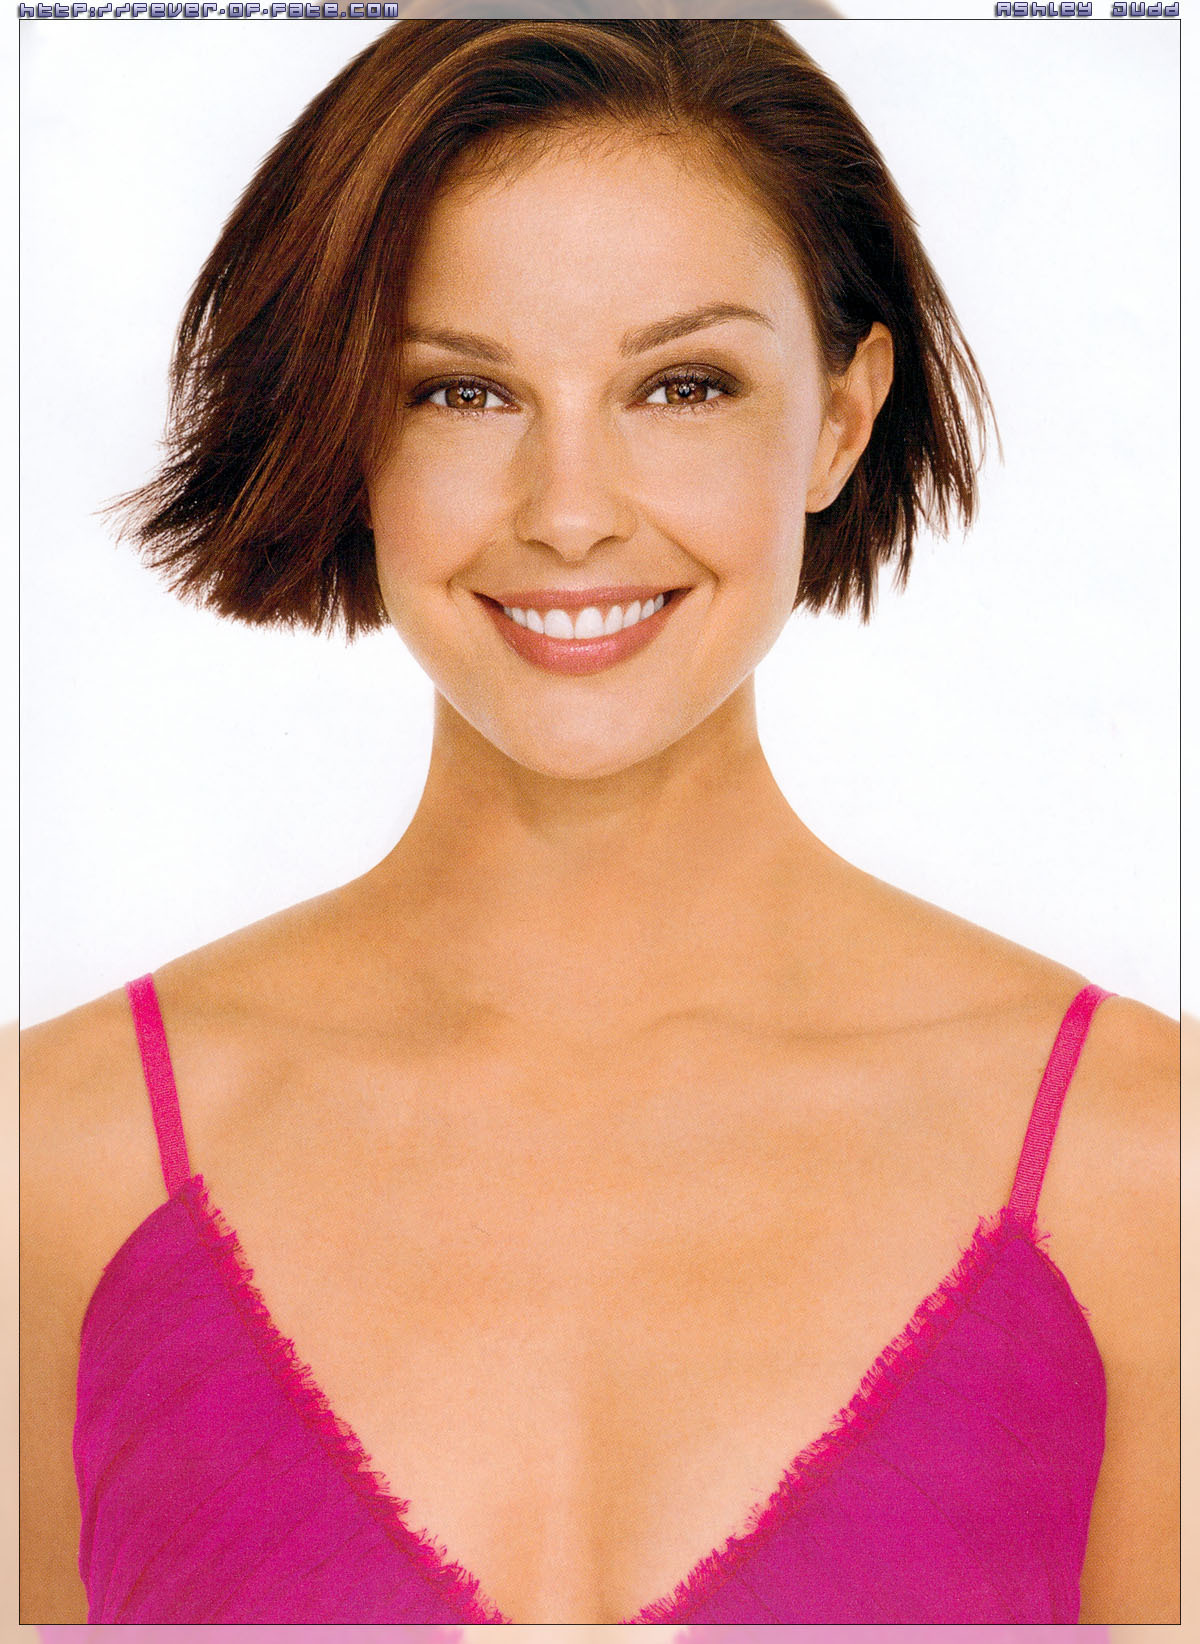 Ashley magazine scans - ASHLEY JUDD Photo (1581146) - Fanpop